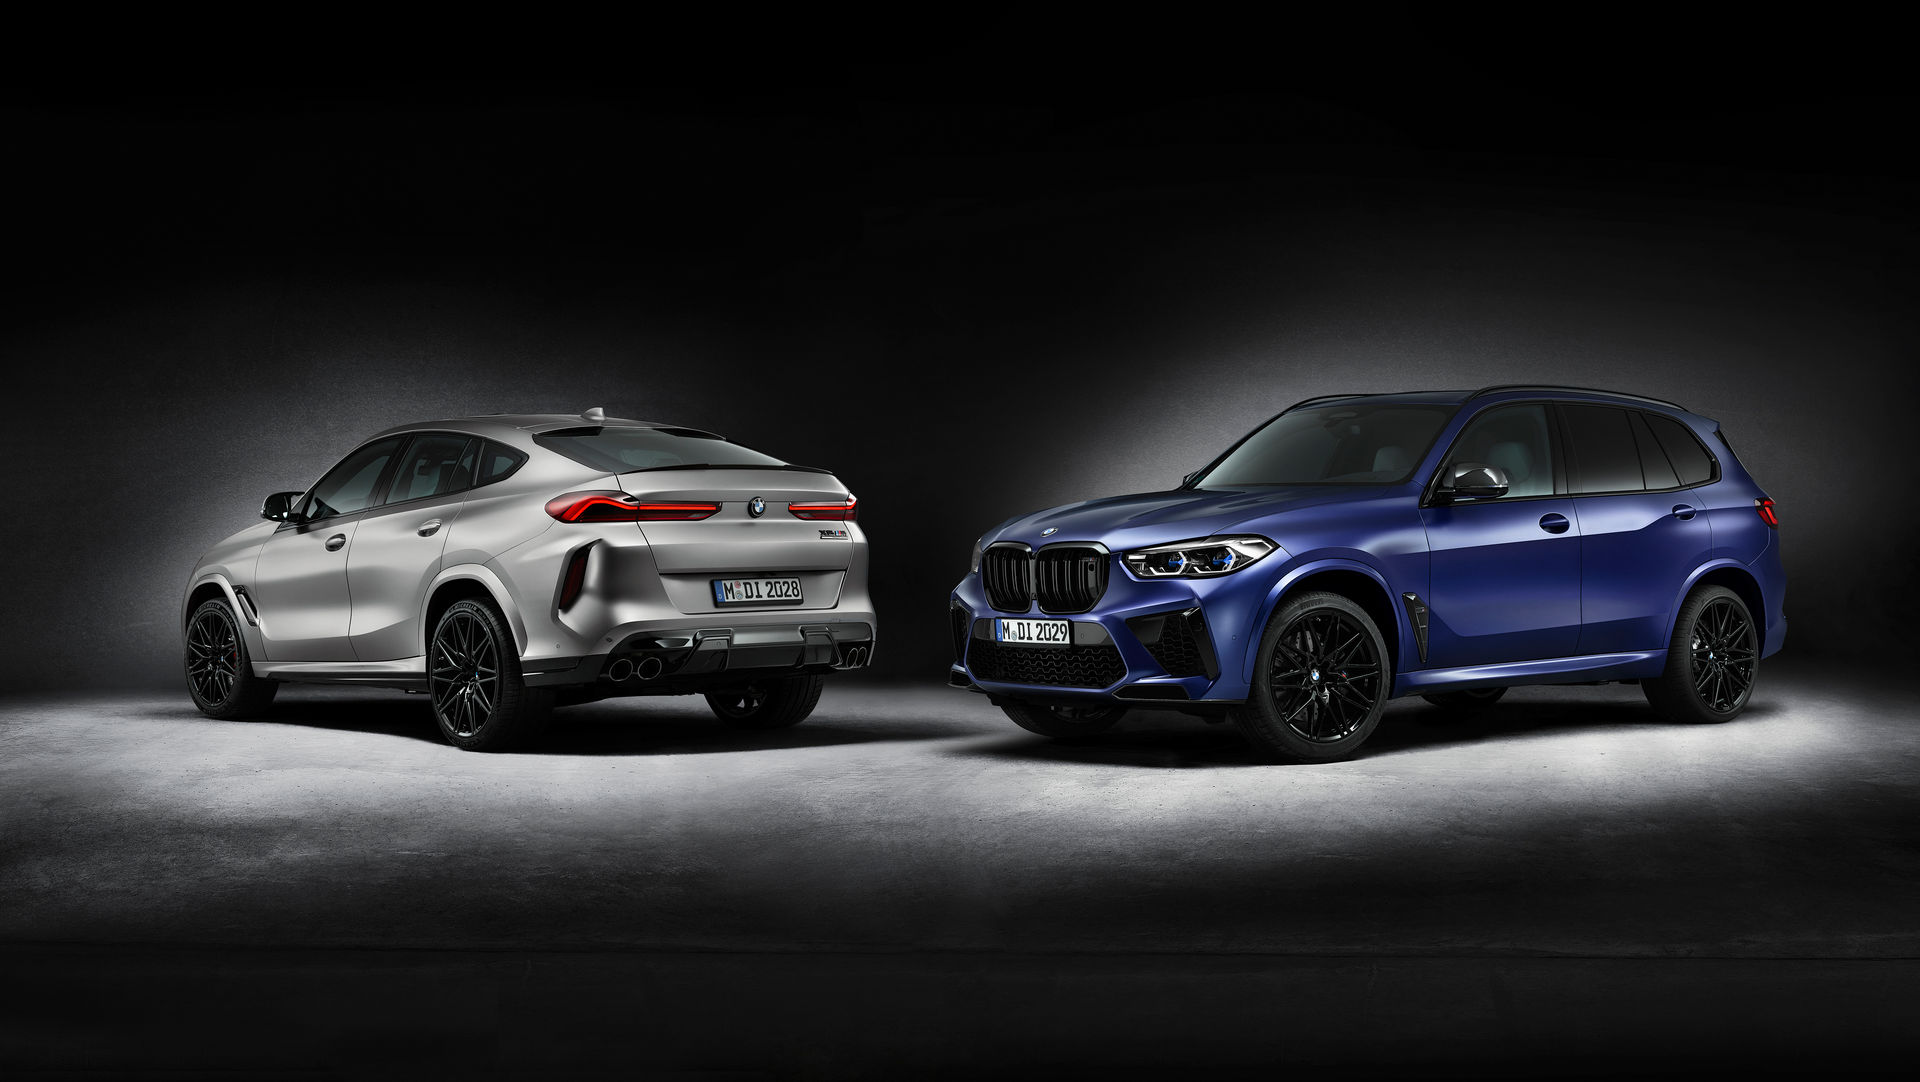 BMW-X5-M-X6-M-Competition-First-Edition-6